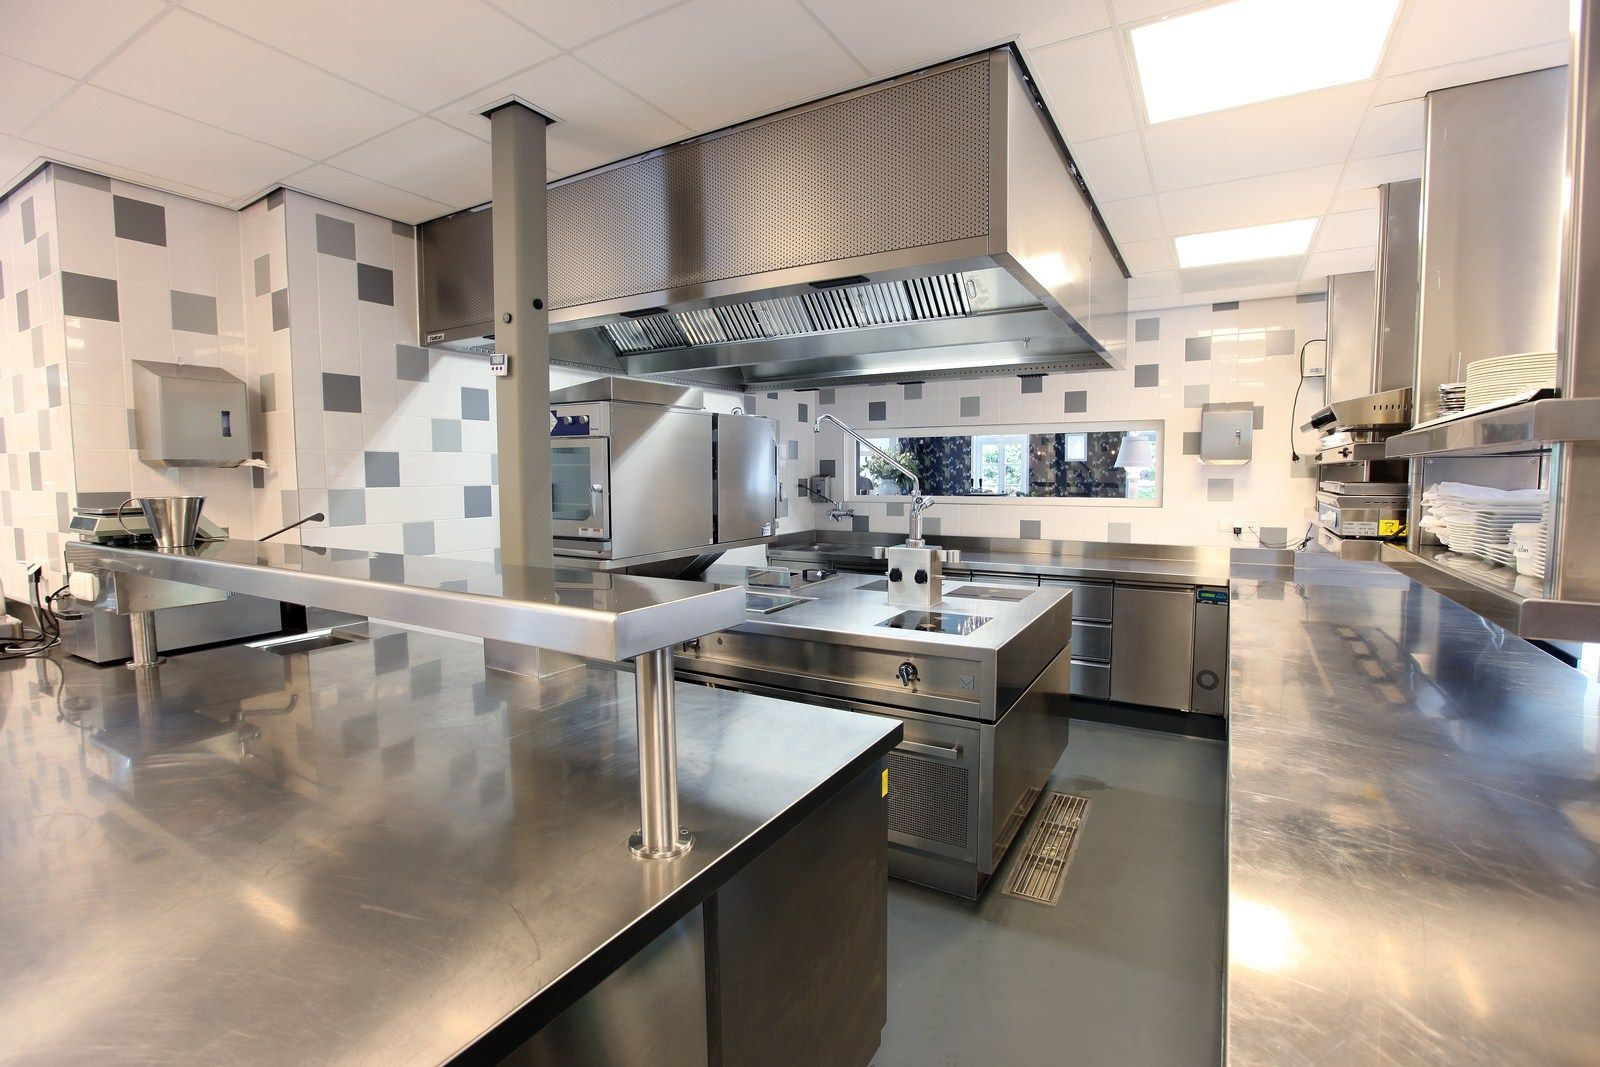 shorthillstile  Restaurant kitchen design, Commercial kitchen